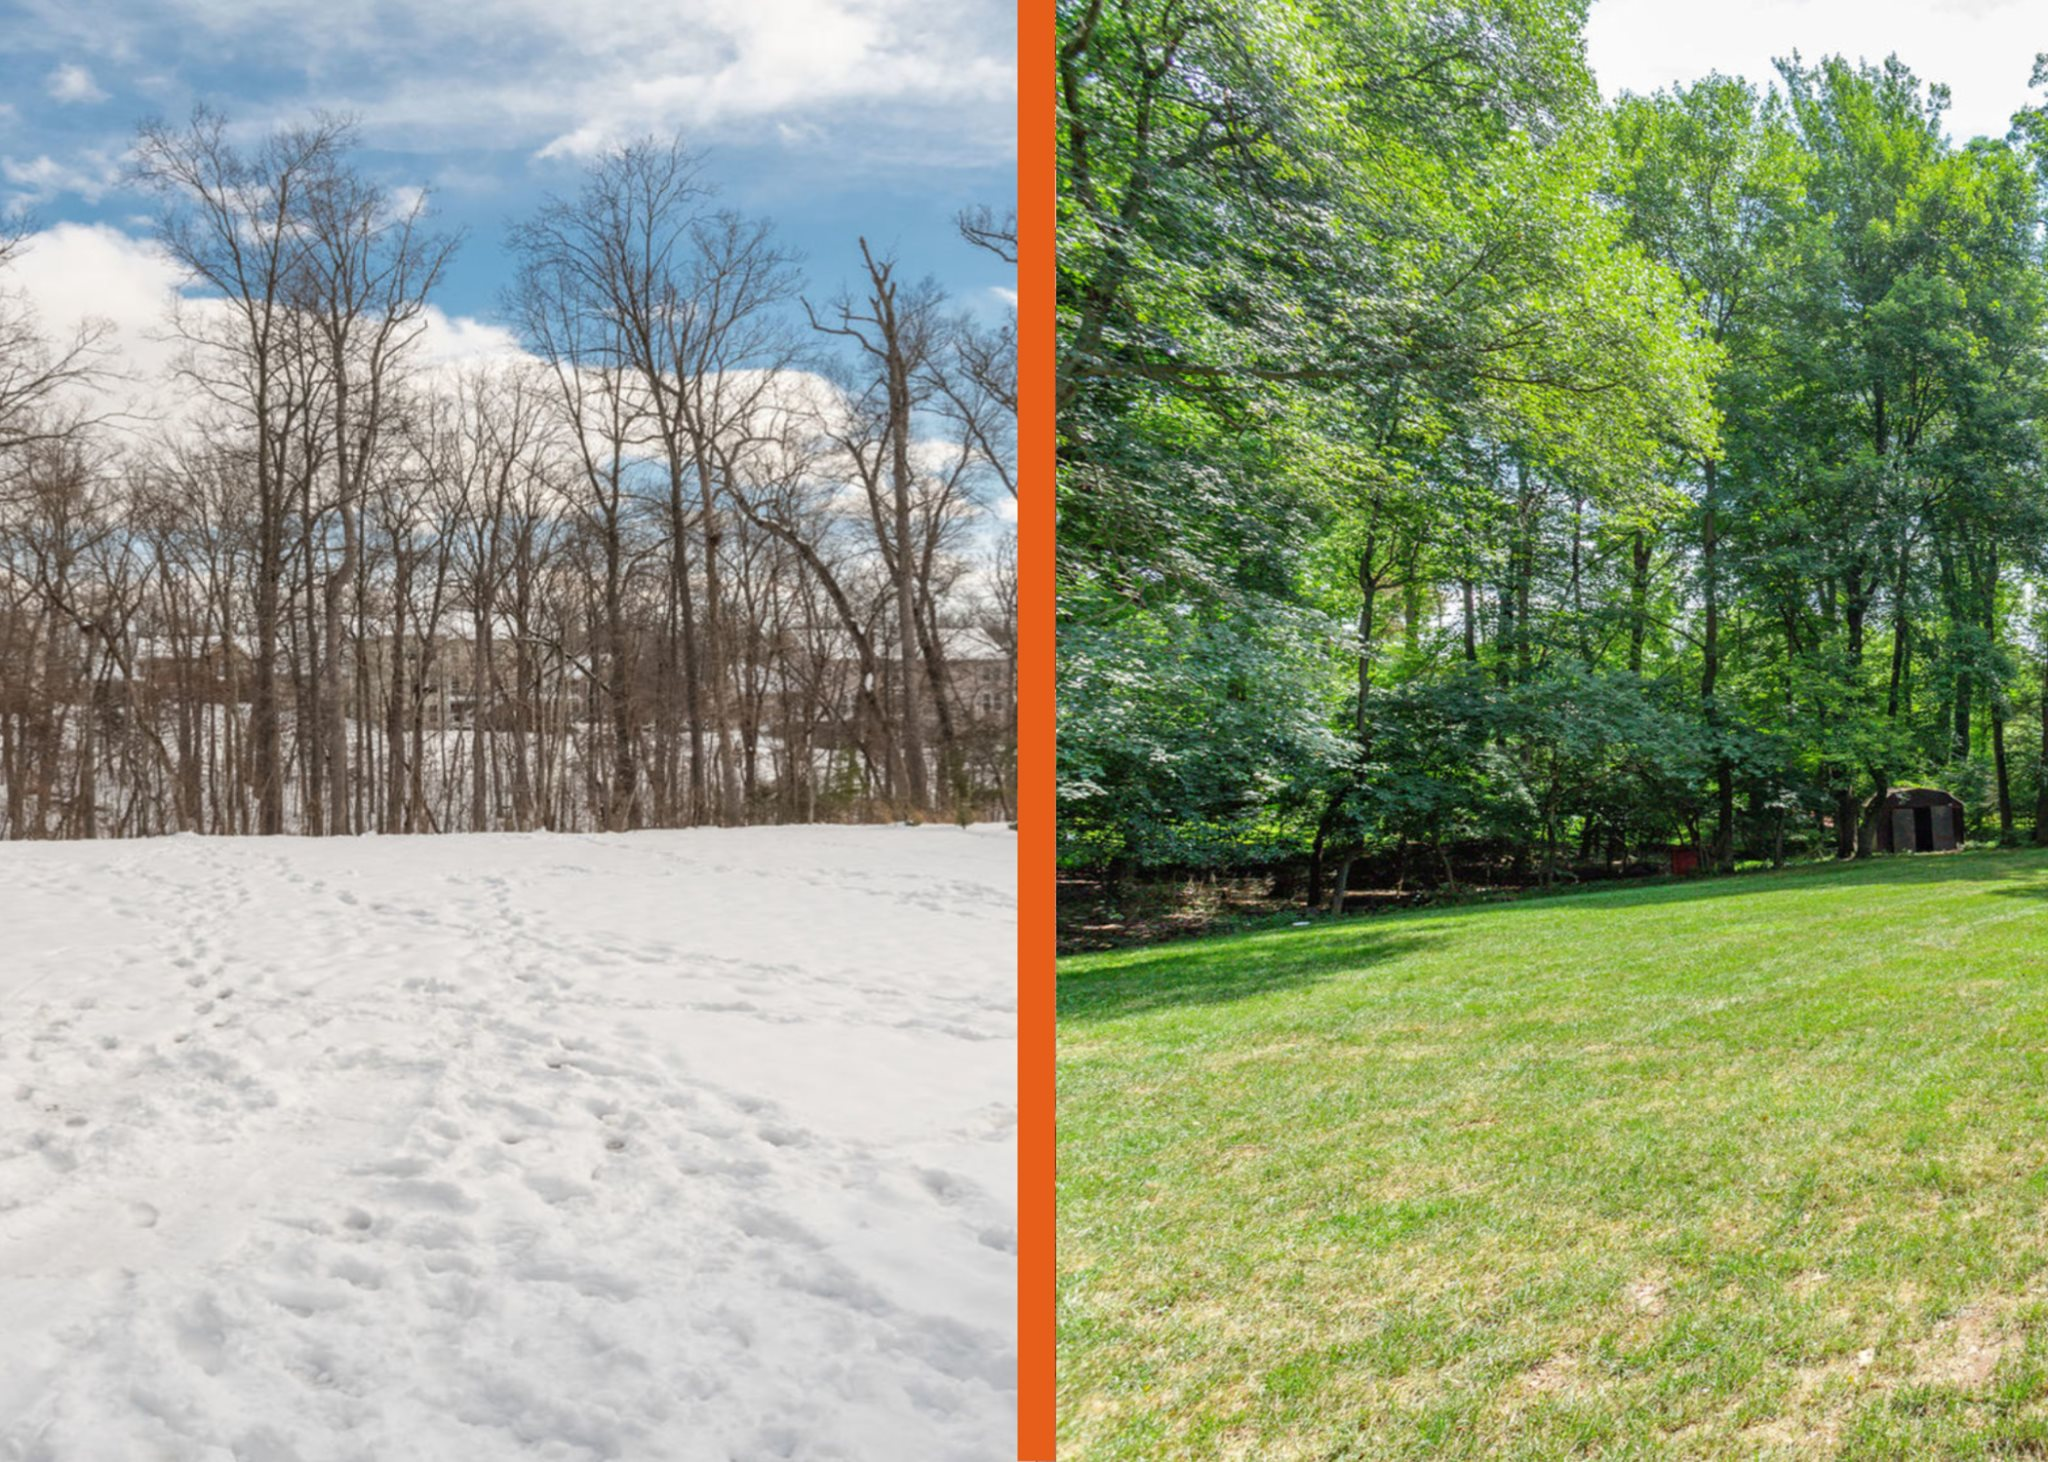 Yard Photo in Winter and Summer